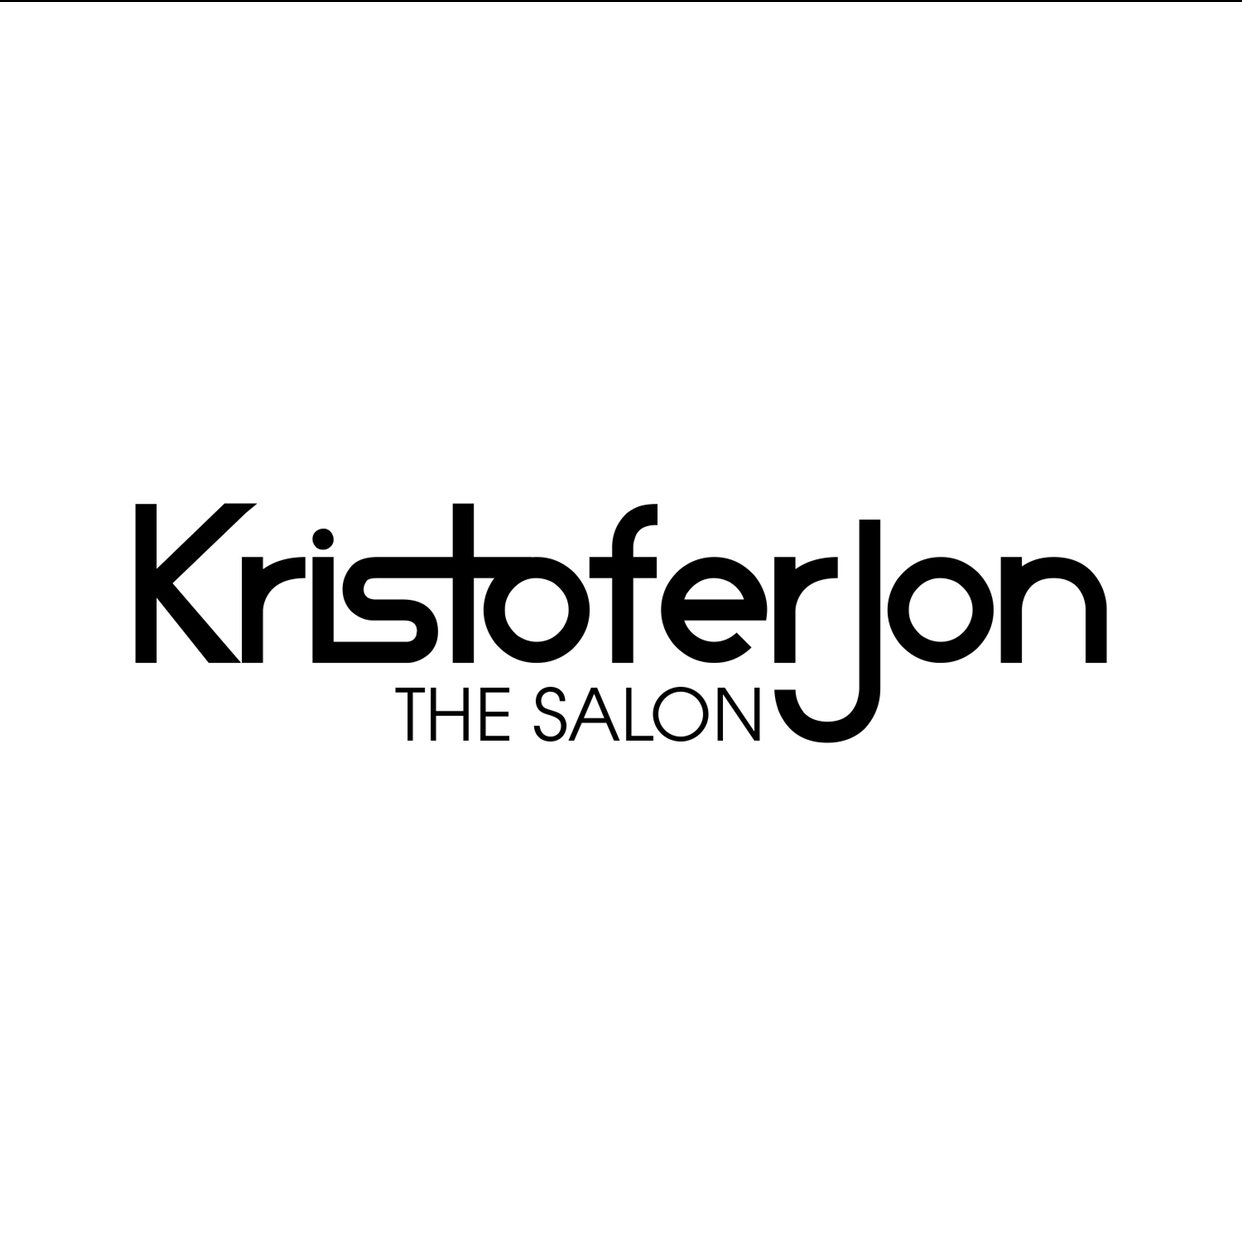 Kristoferjon the Salon